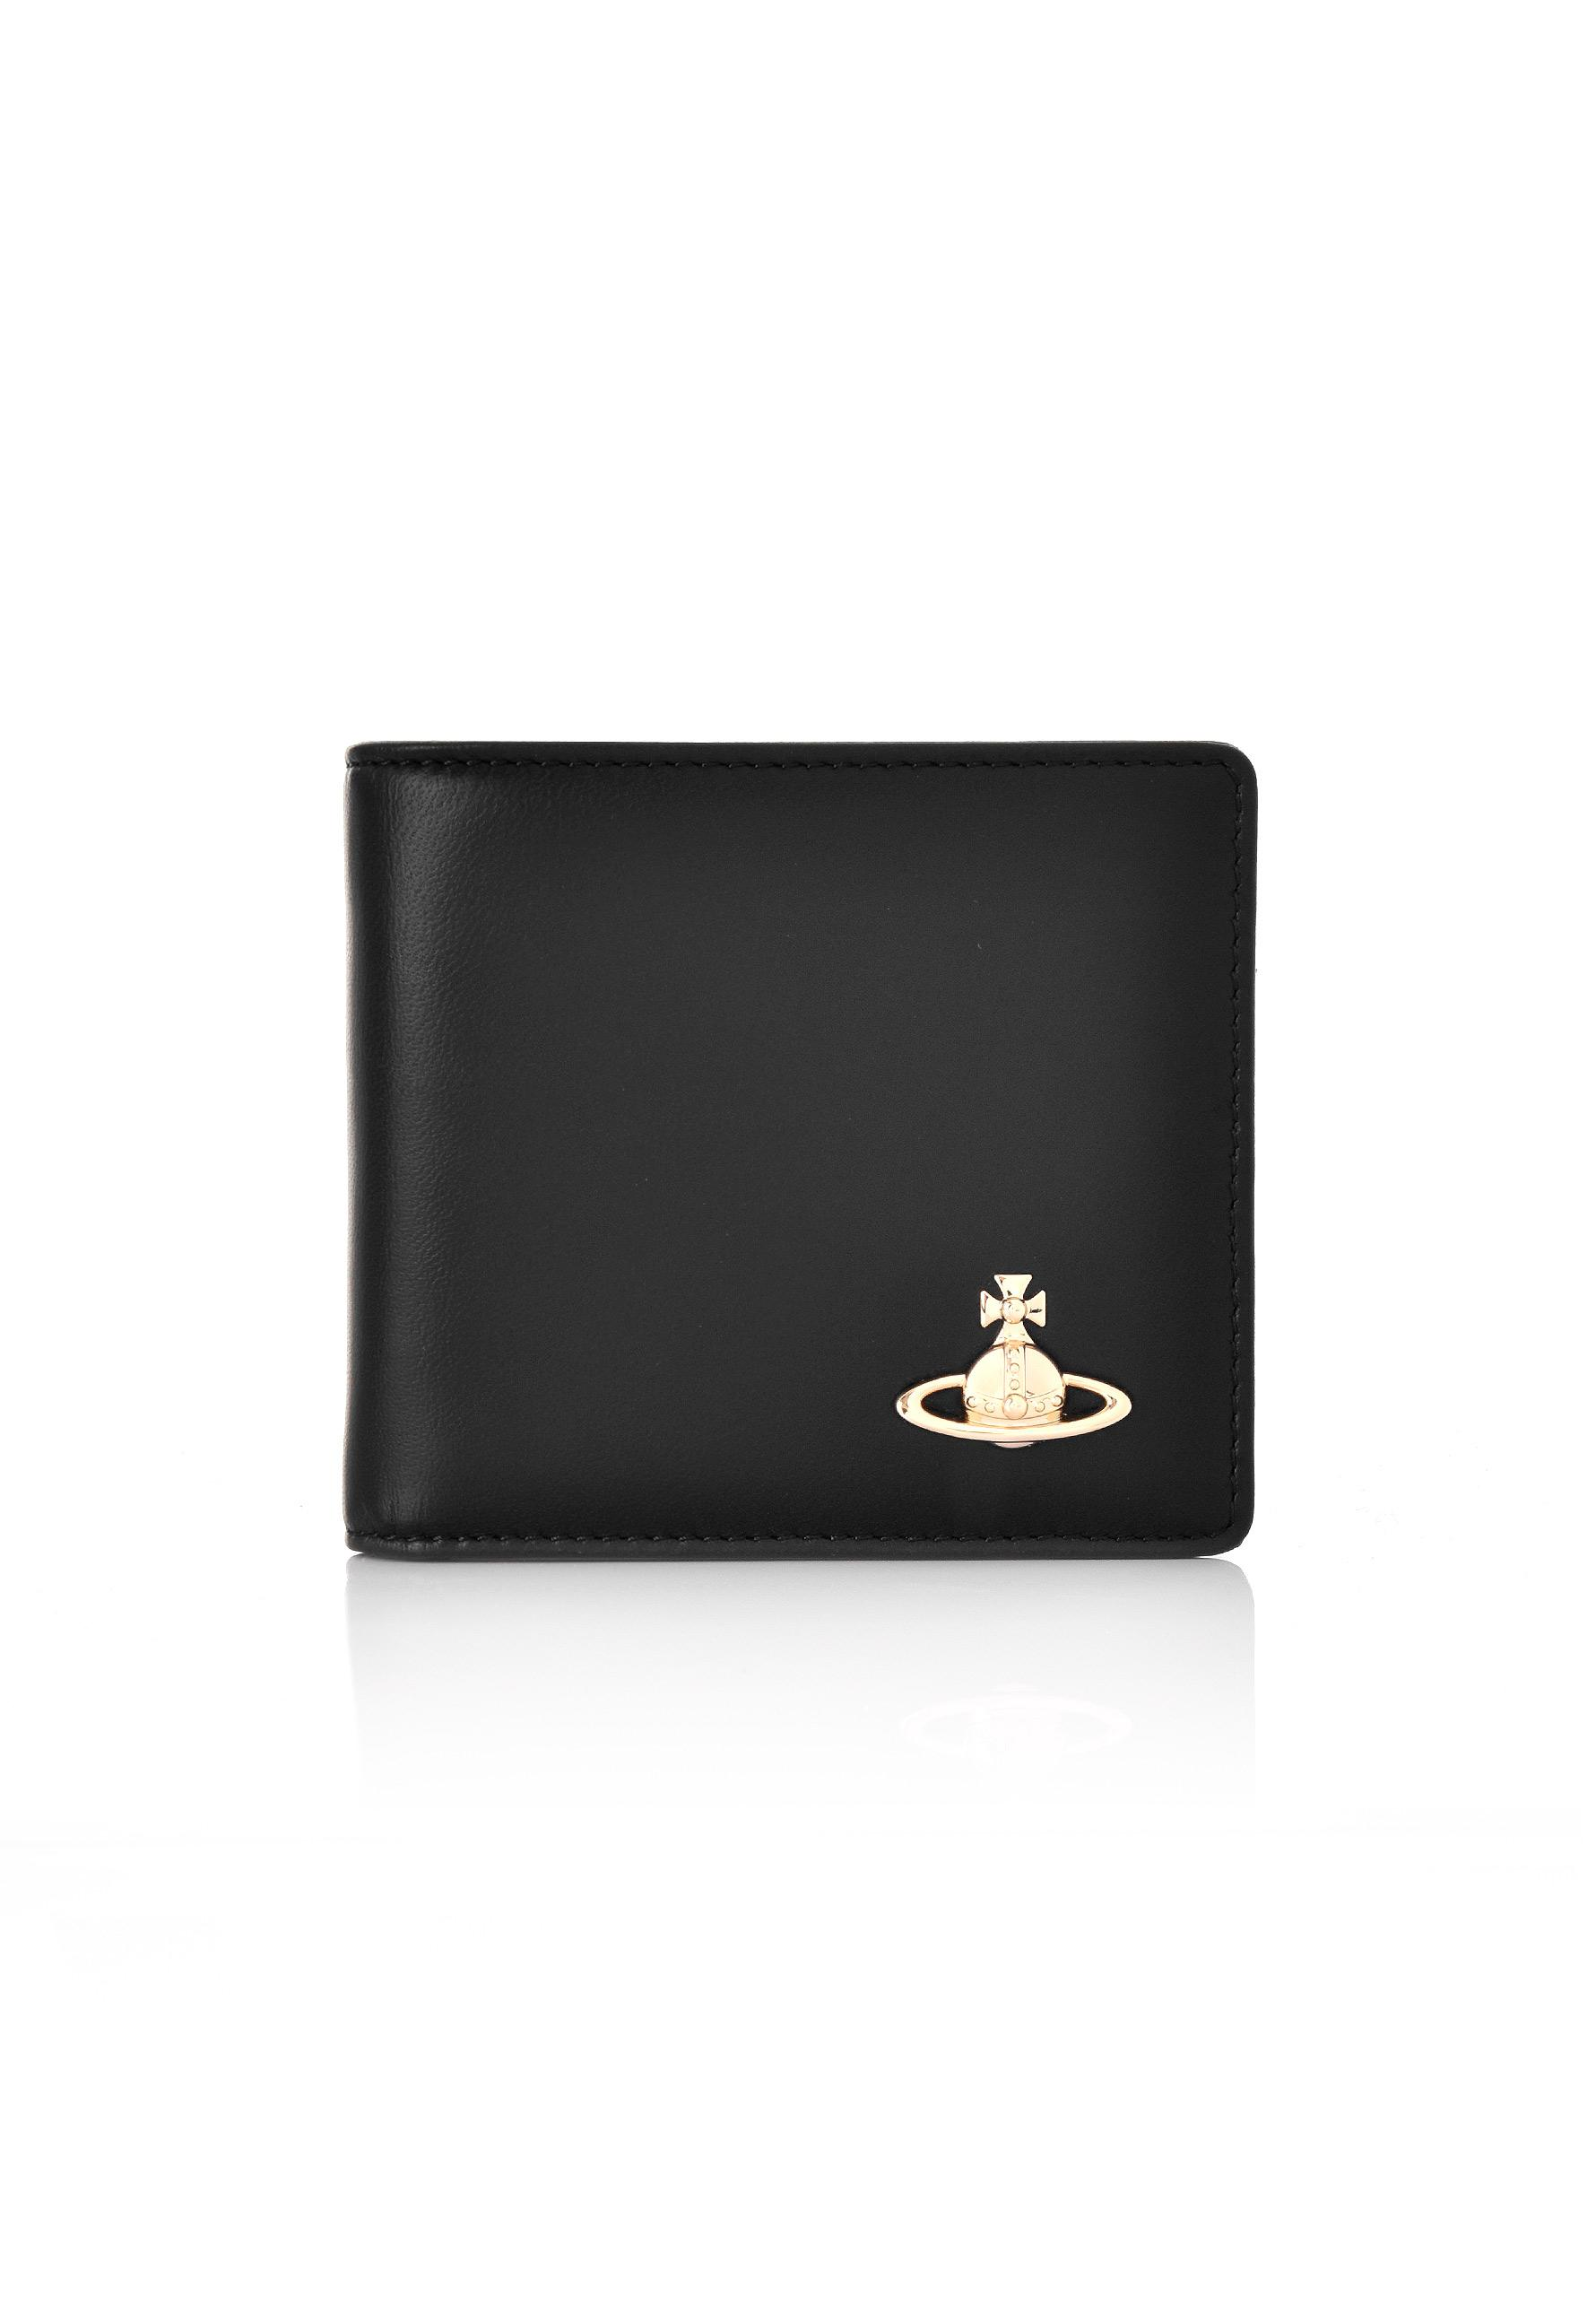 95e0cae9bf7 Vivienne Westwood Emma Billfold Wallet With Coin Pocket 51010009 ...